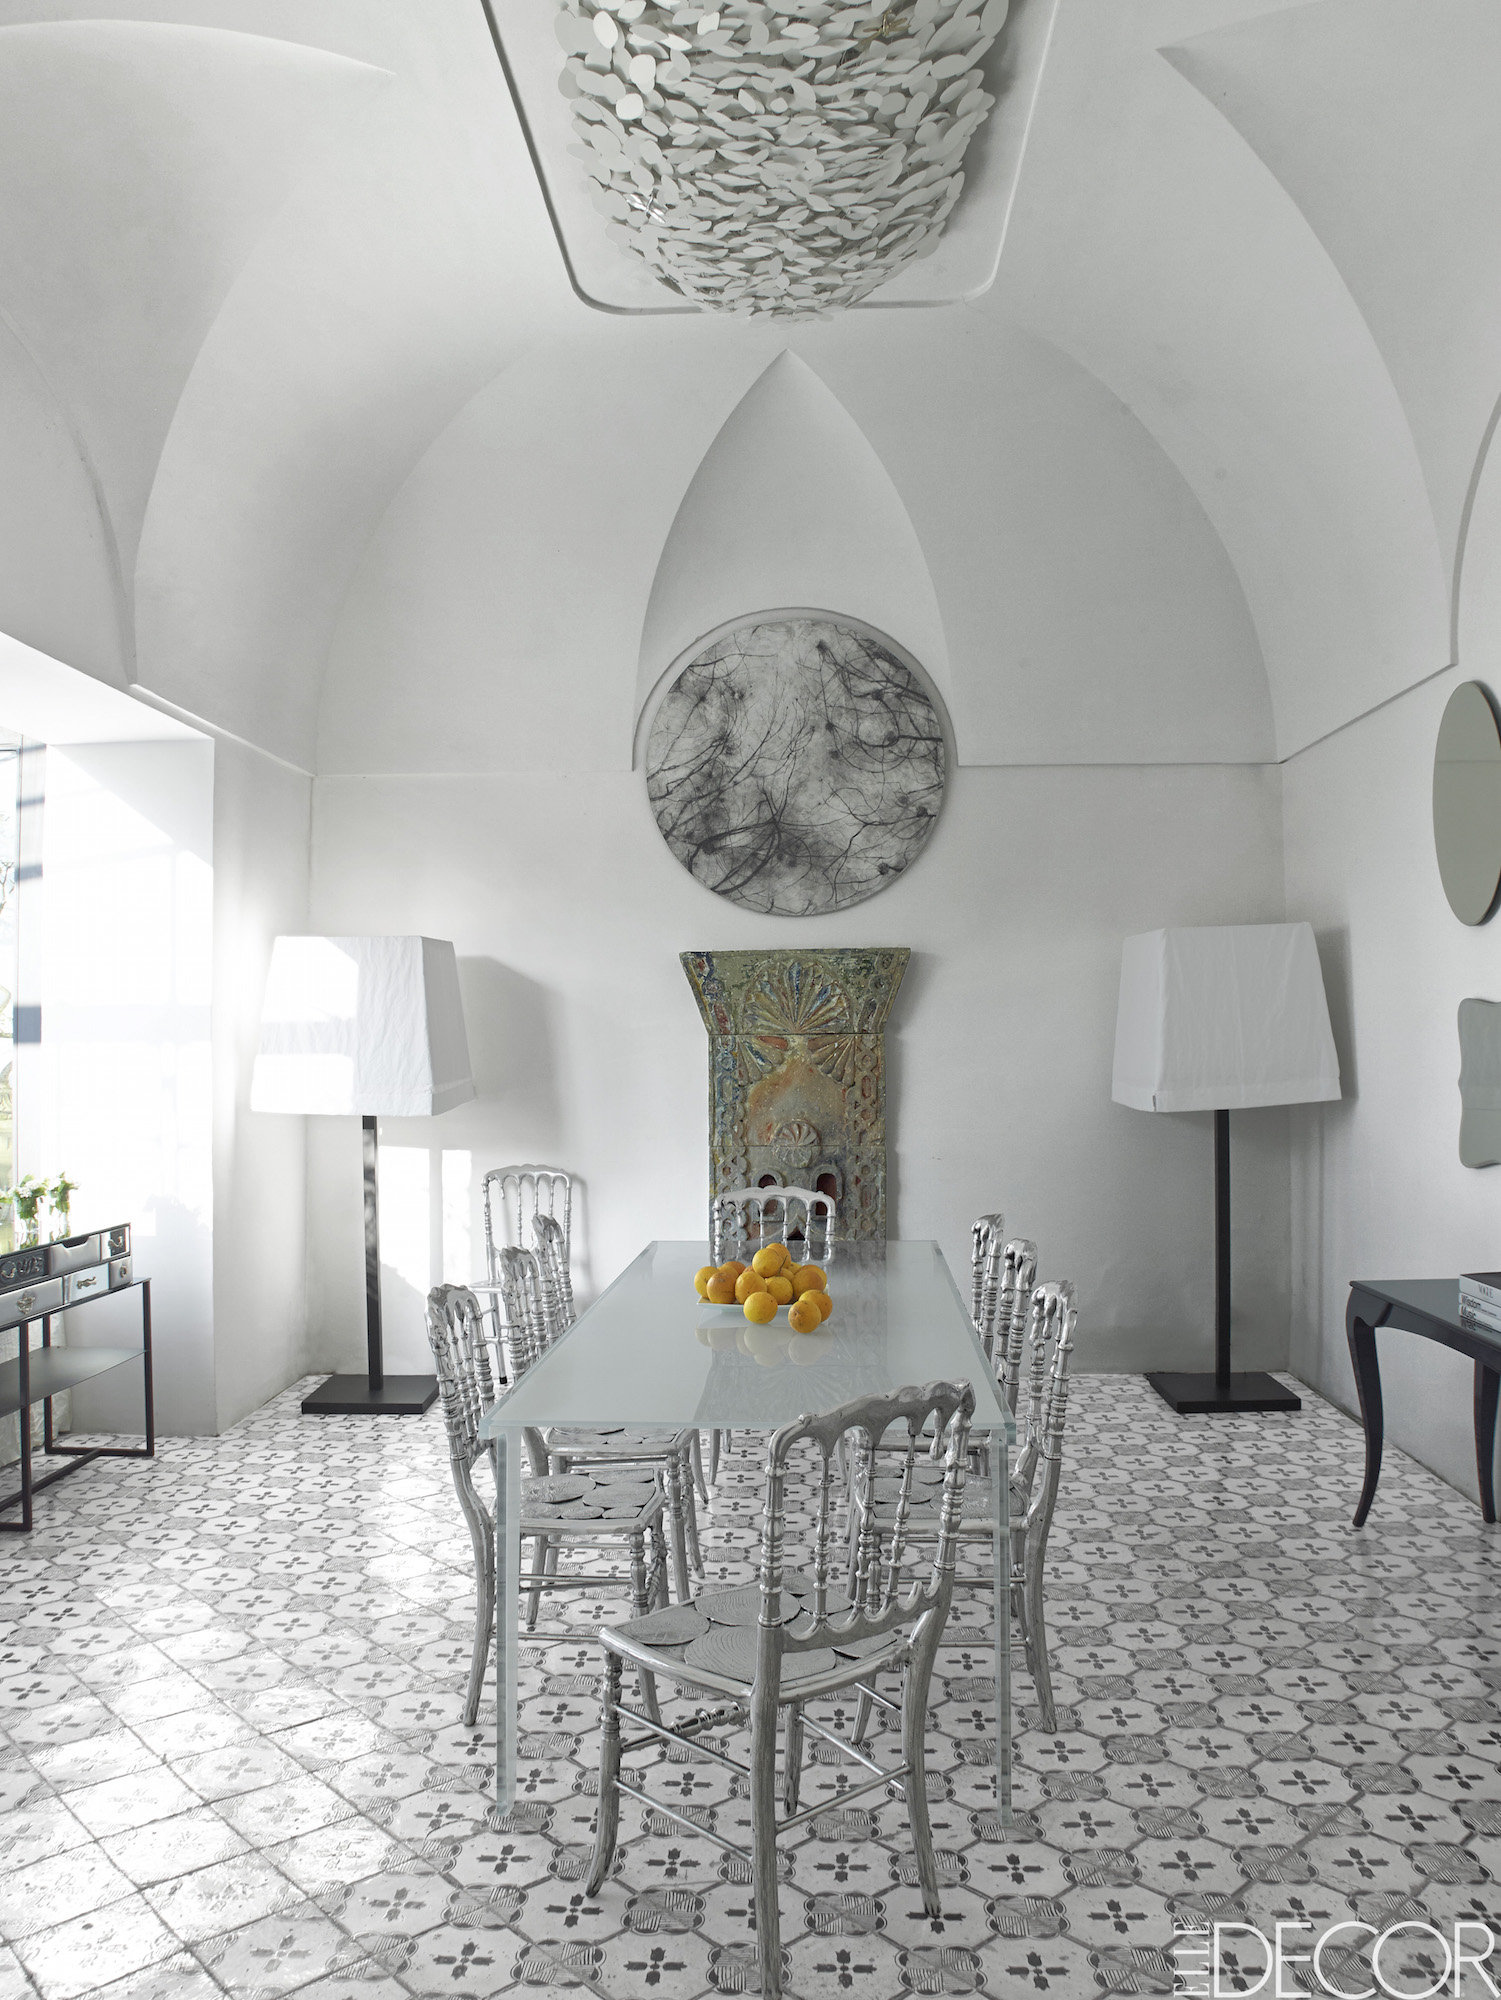 10-Dining-Room-Ideas-to-Inspire-Yourself-by-Elle-Décor-5 Dining Room Ideas 10 Dining Room Ideas to Inspire Yourself by Elle Décor 10 Dining Room Ideas to Inspire Yourself by Elle D  cor 5